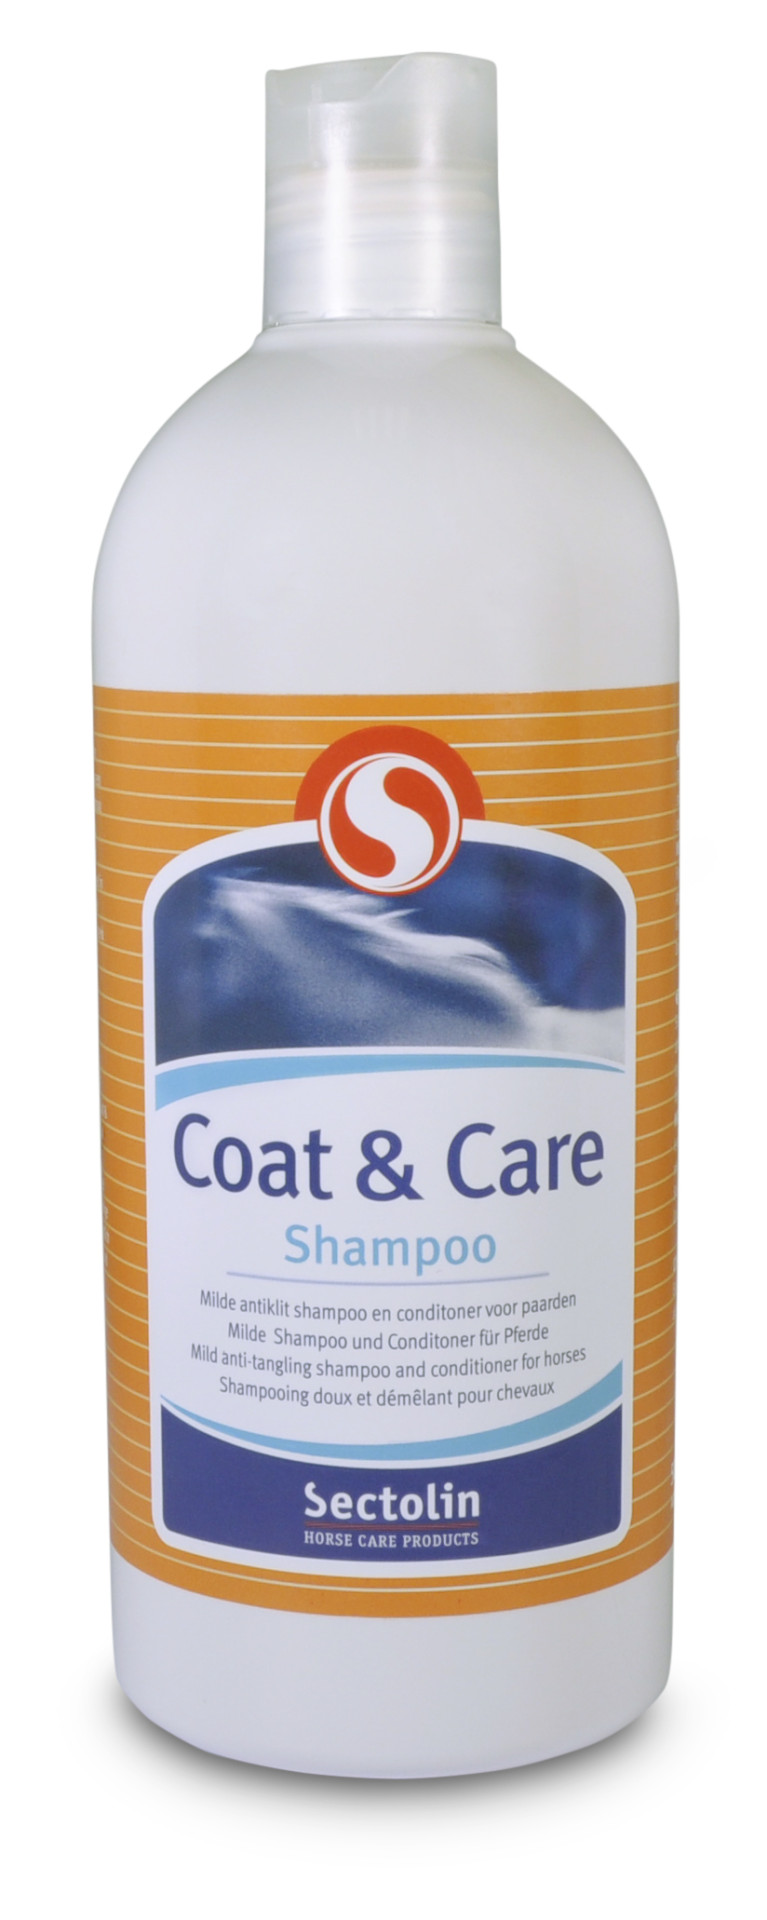 Sectolin Coat & Care Shampoo 500 ml